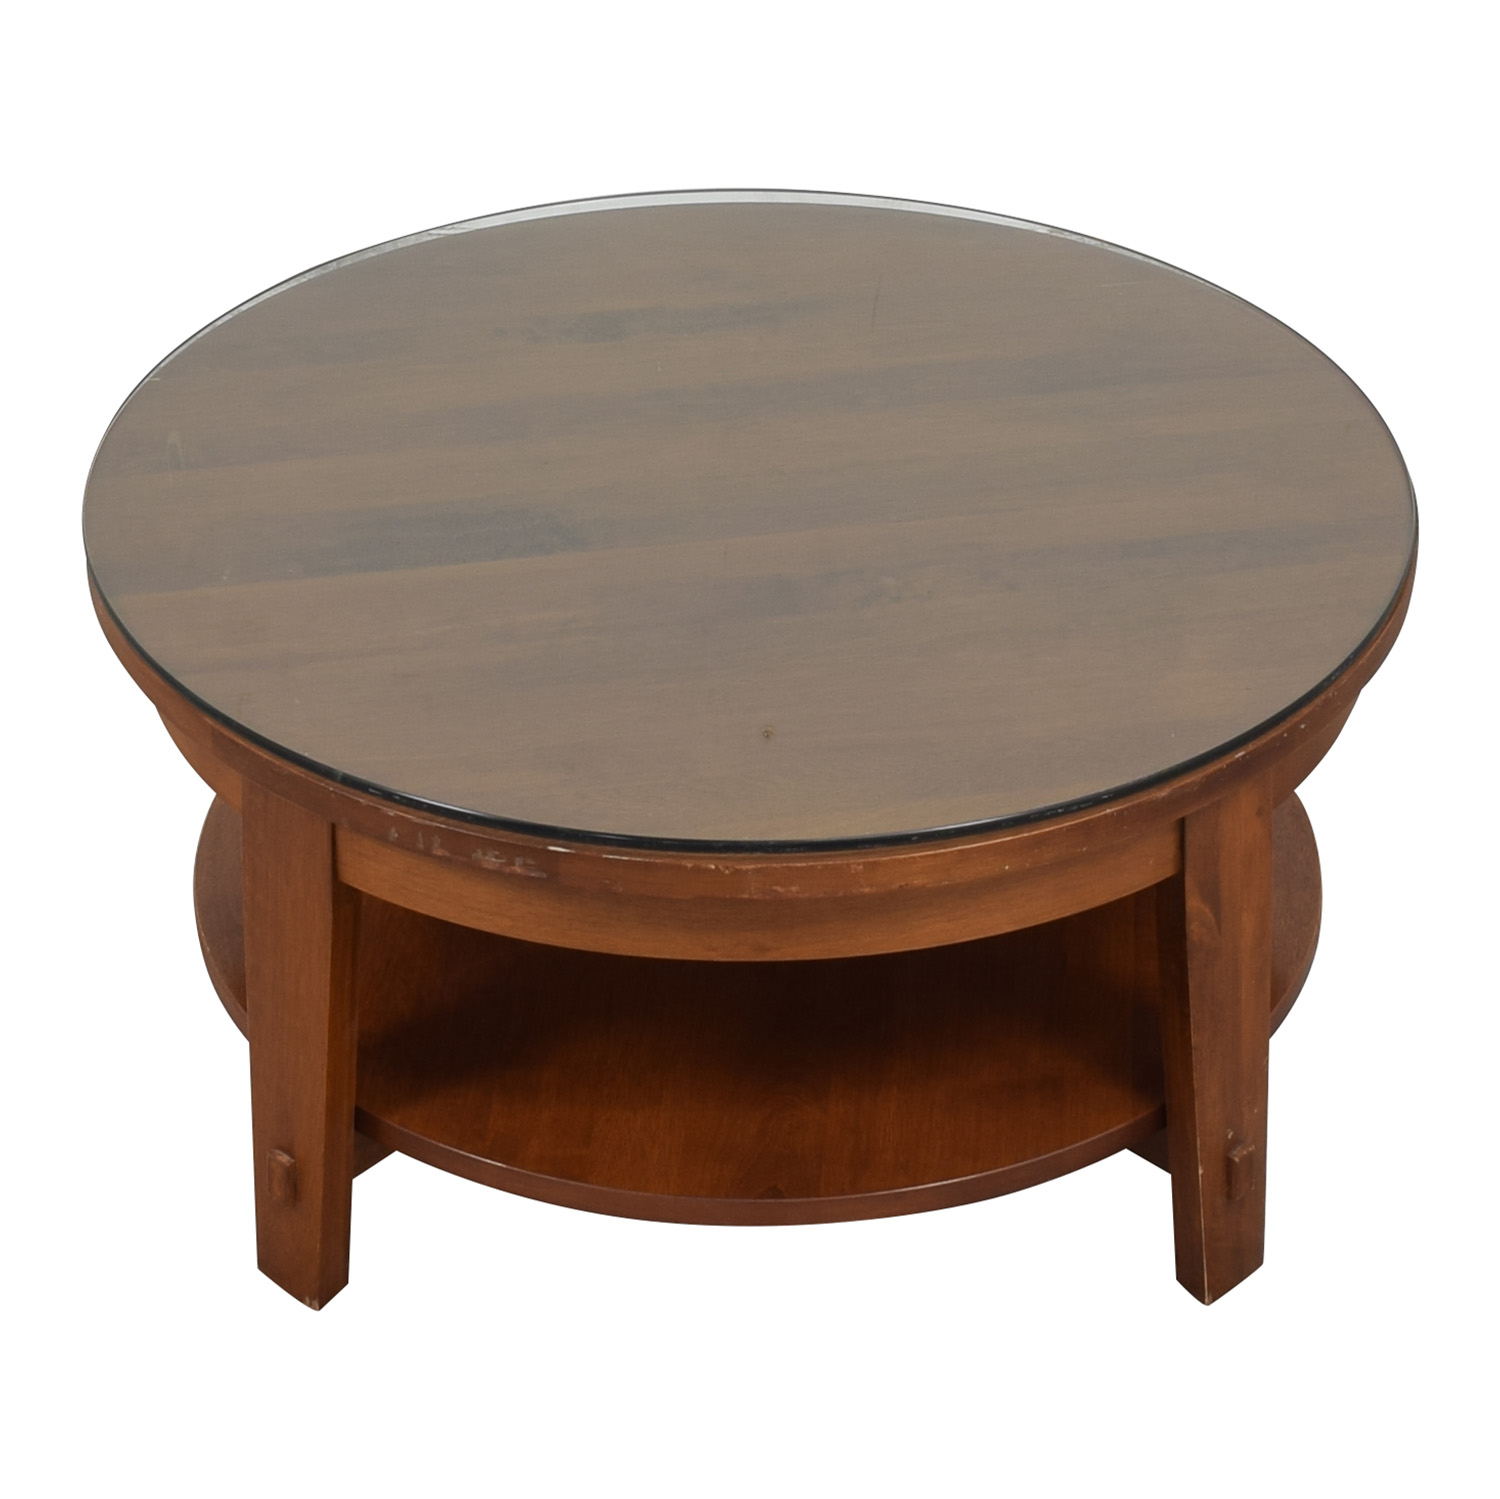 Crate & Barrel Crate & Barrel Round Coffee Table for sale